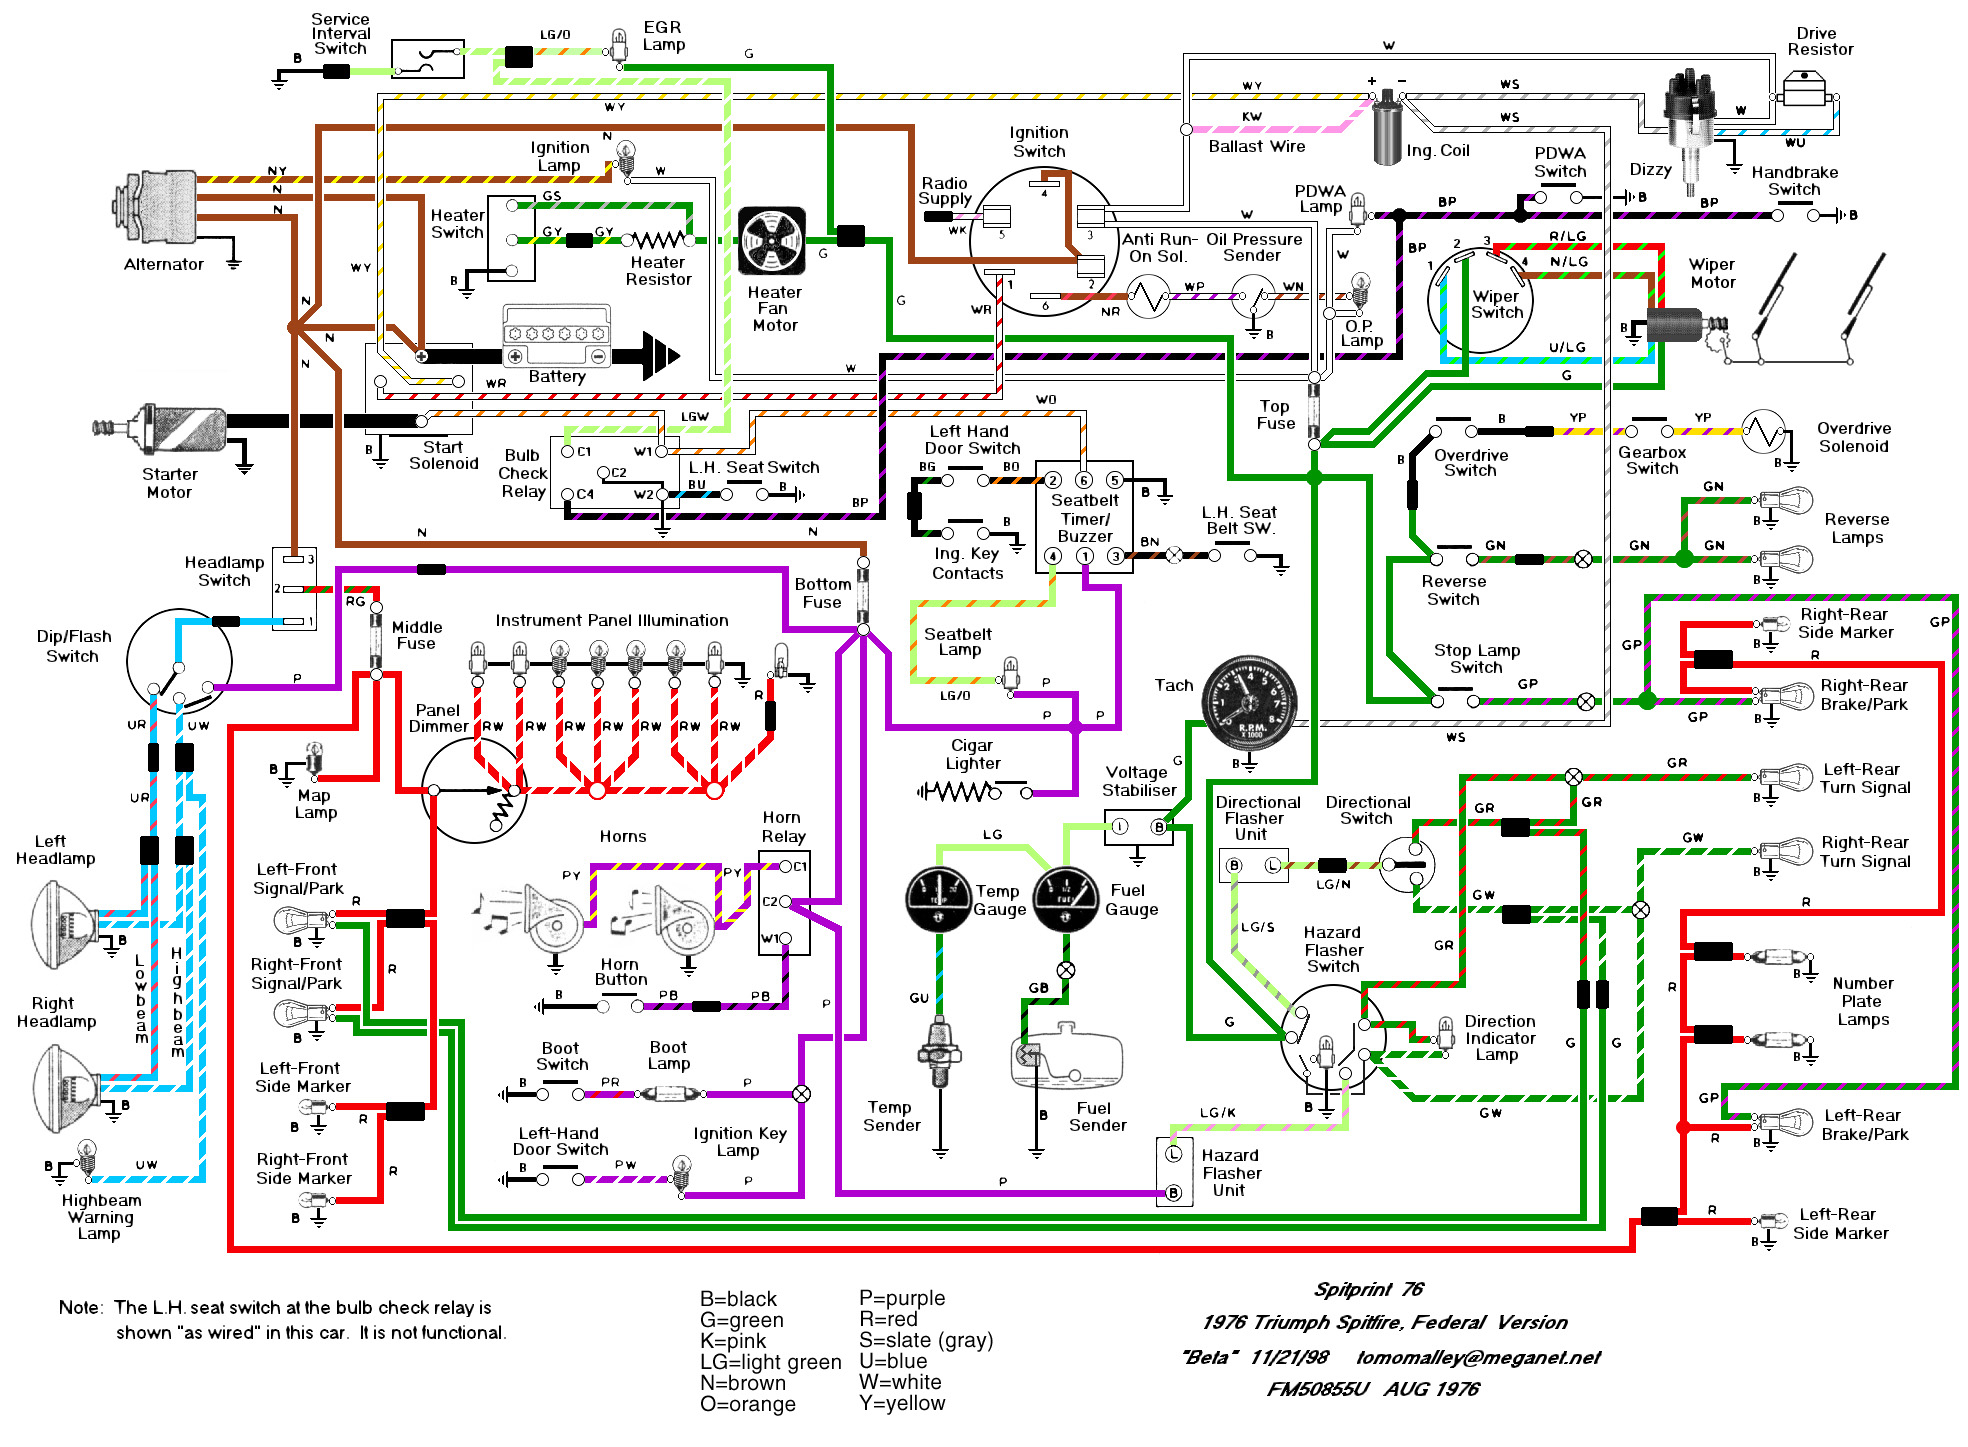 76diagram wiring gremlins please help spitfire & gt6 forum triumph morris minor wiring diagram at mifinder.co